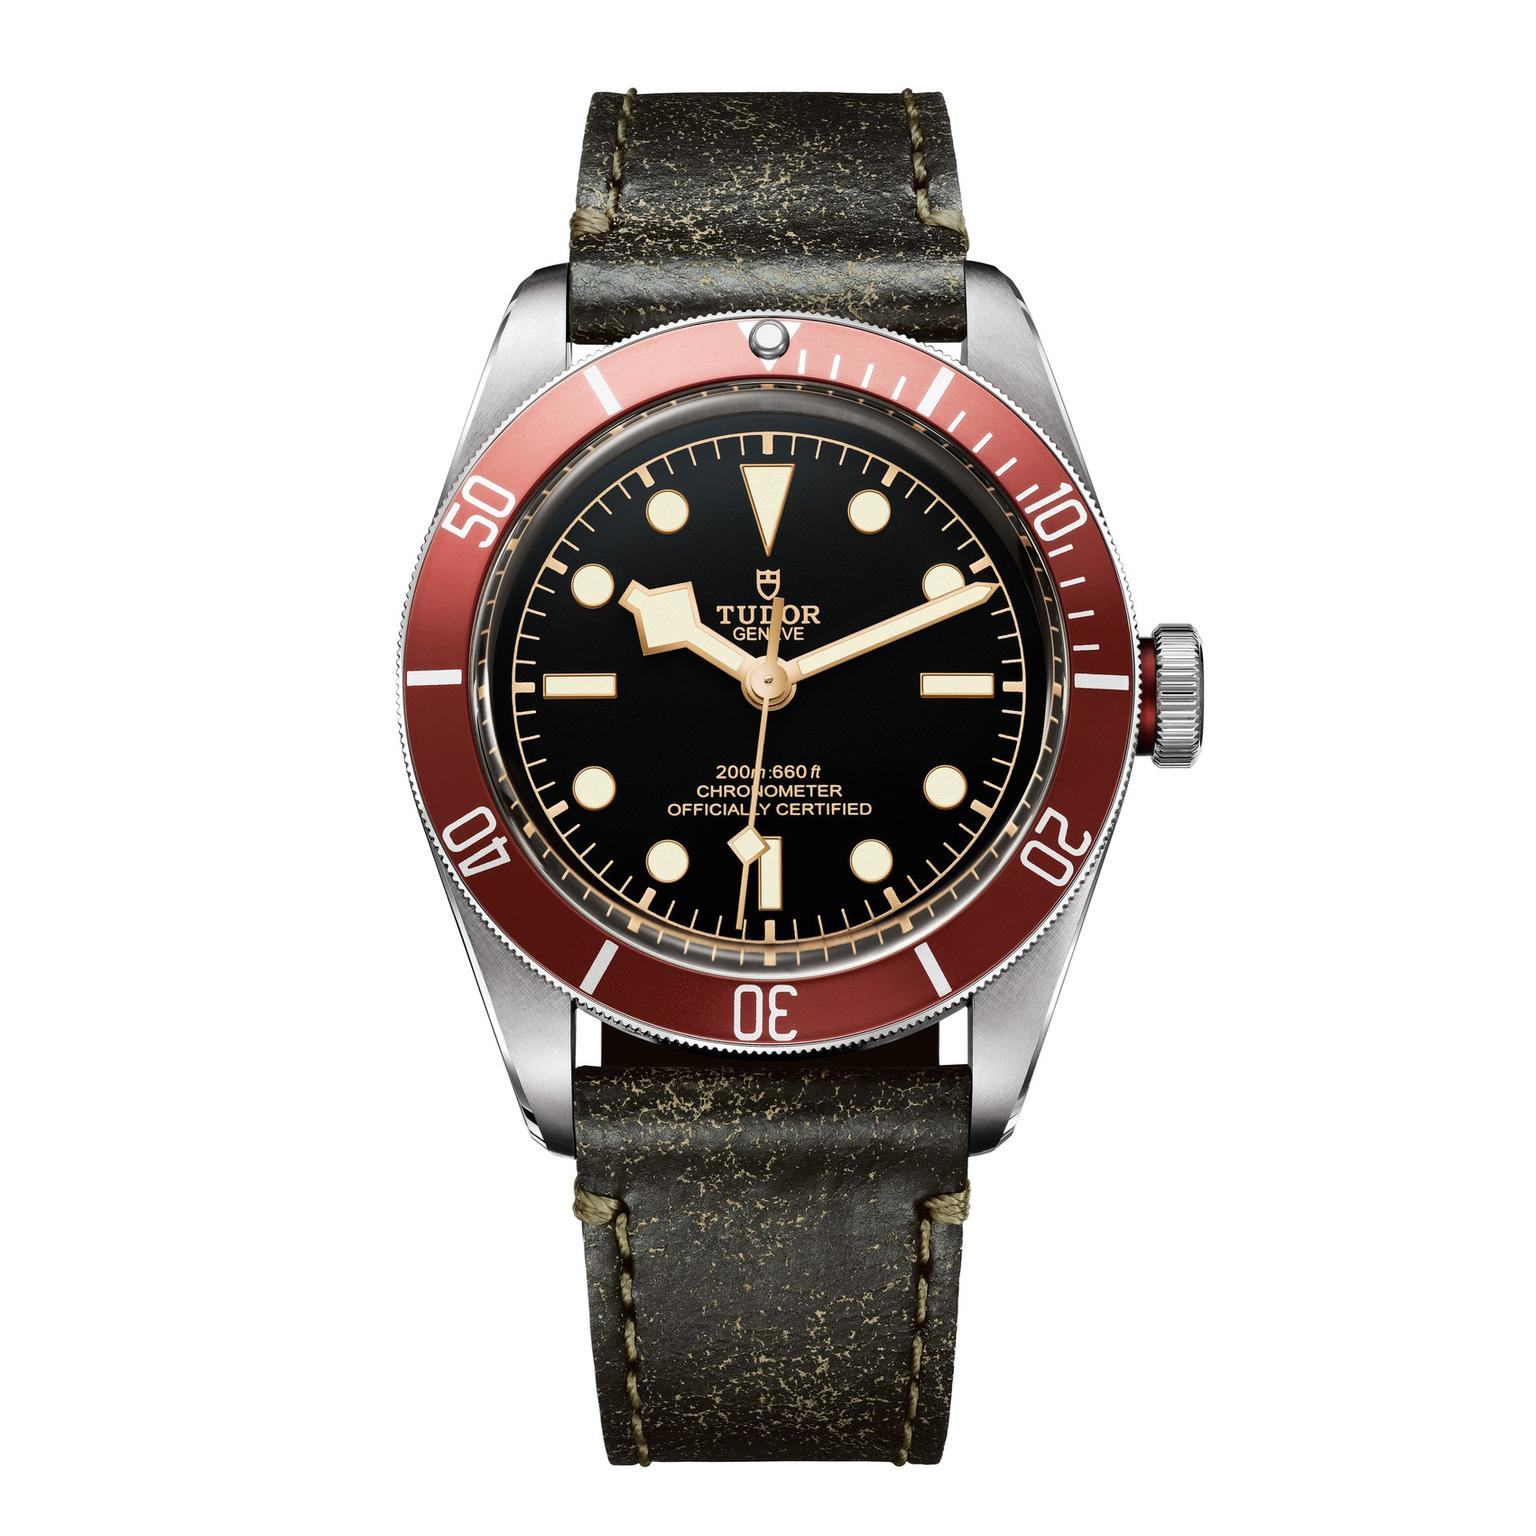 Tudor Heritage Black Bay watch with aged leather strap